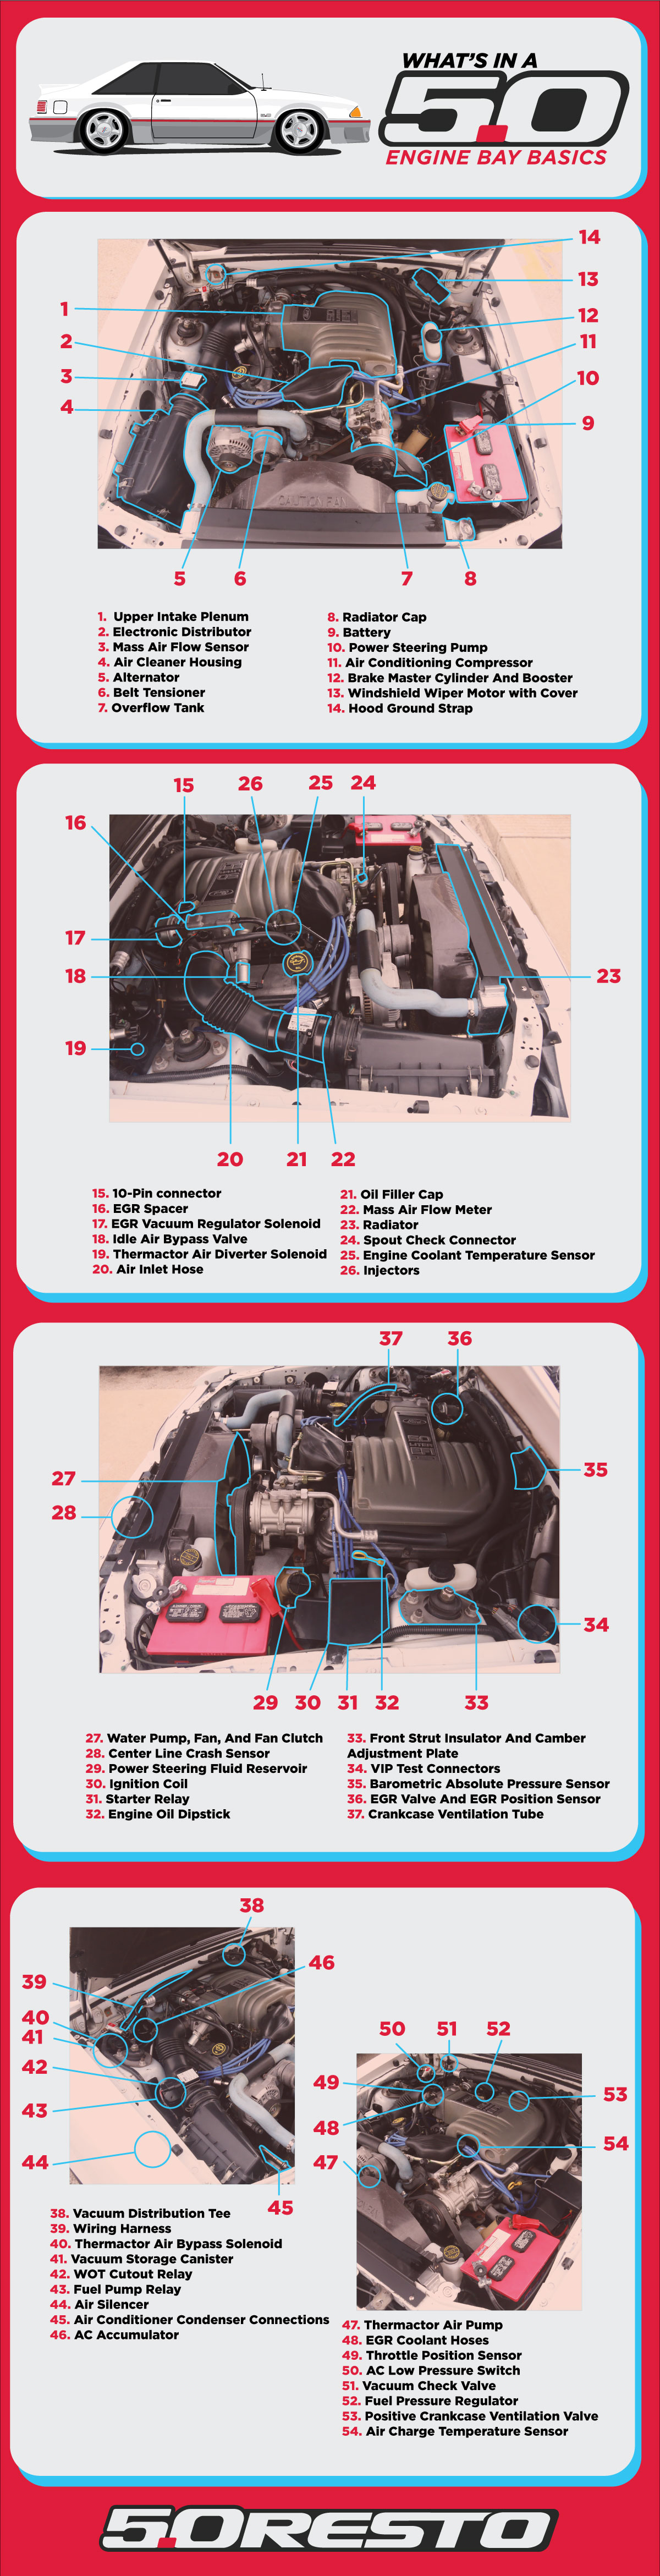 Fox Body Engine Bay Diagram 1986 1993 Parts Thermostat Car And Component